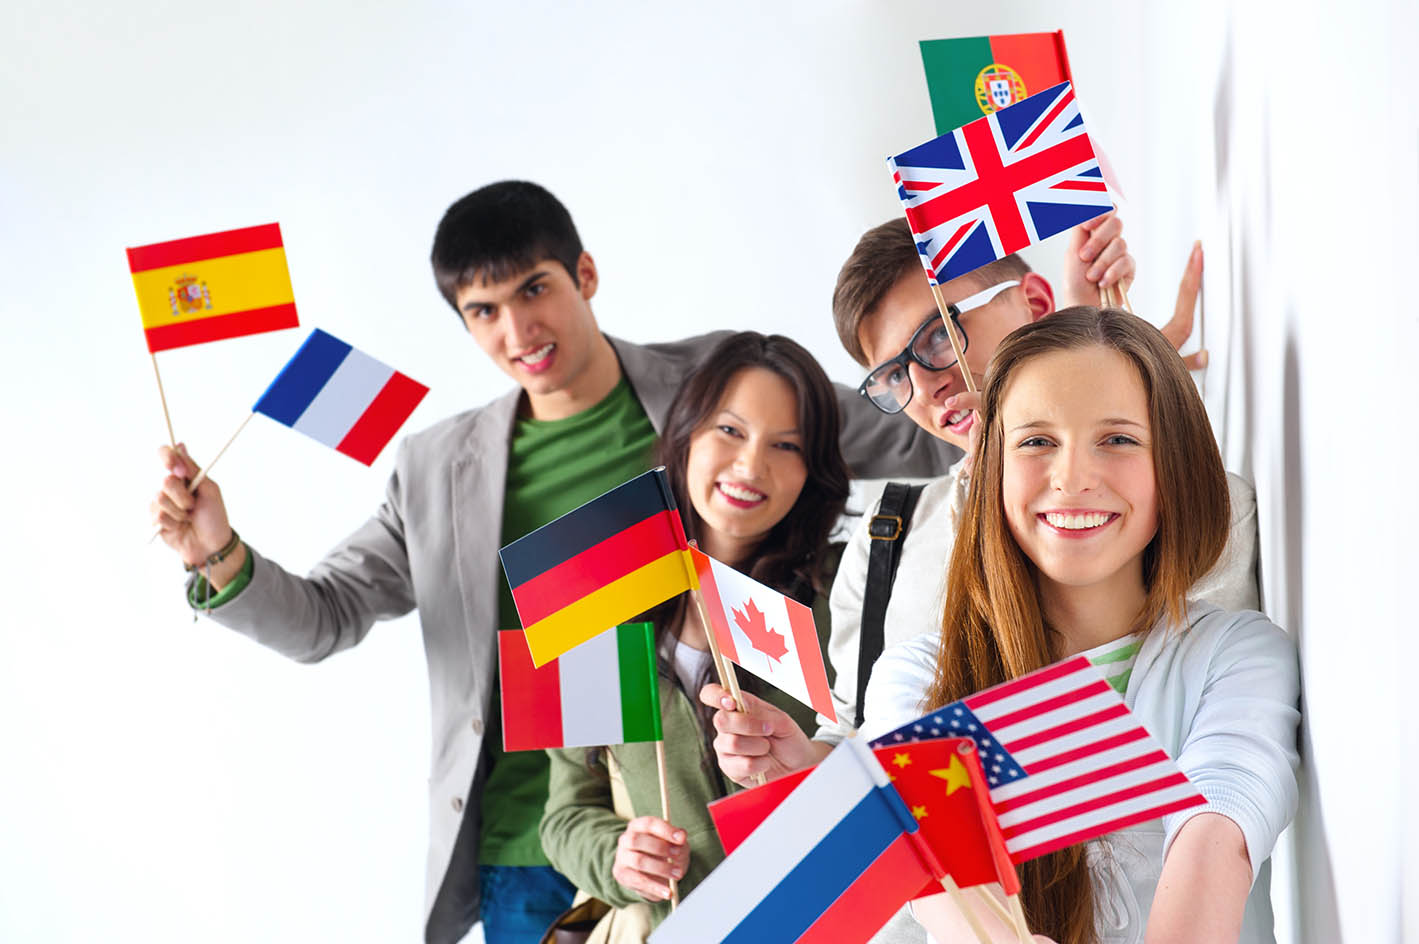 Group of cheerful happy students holding international flags and looking at camera leaning on white wall at campus. International education concept